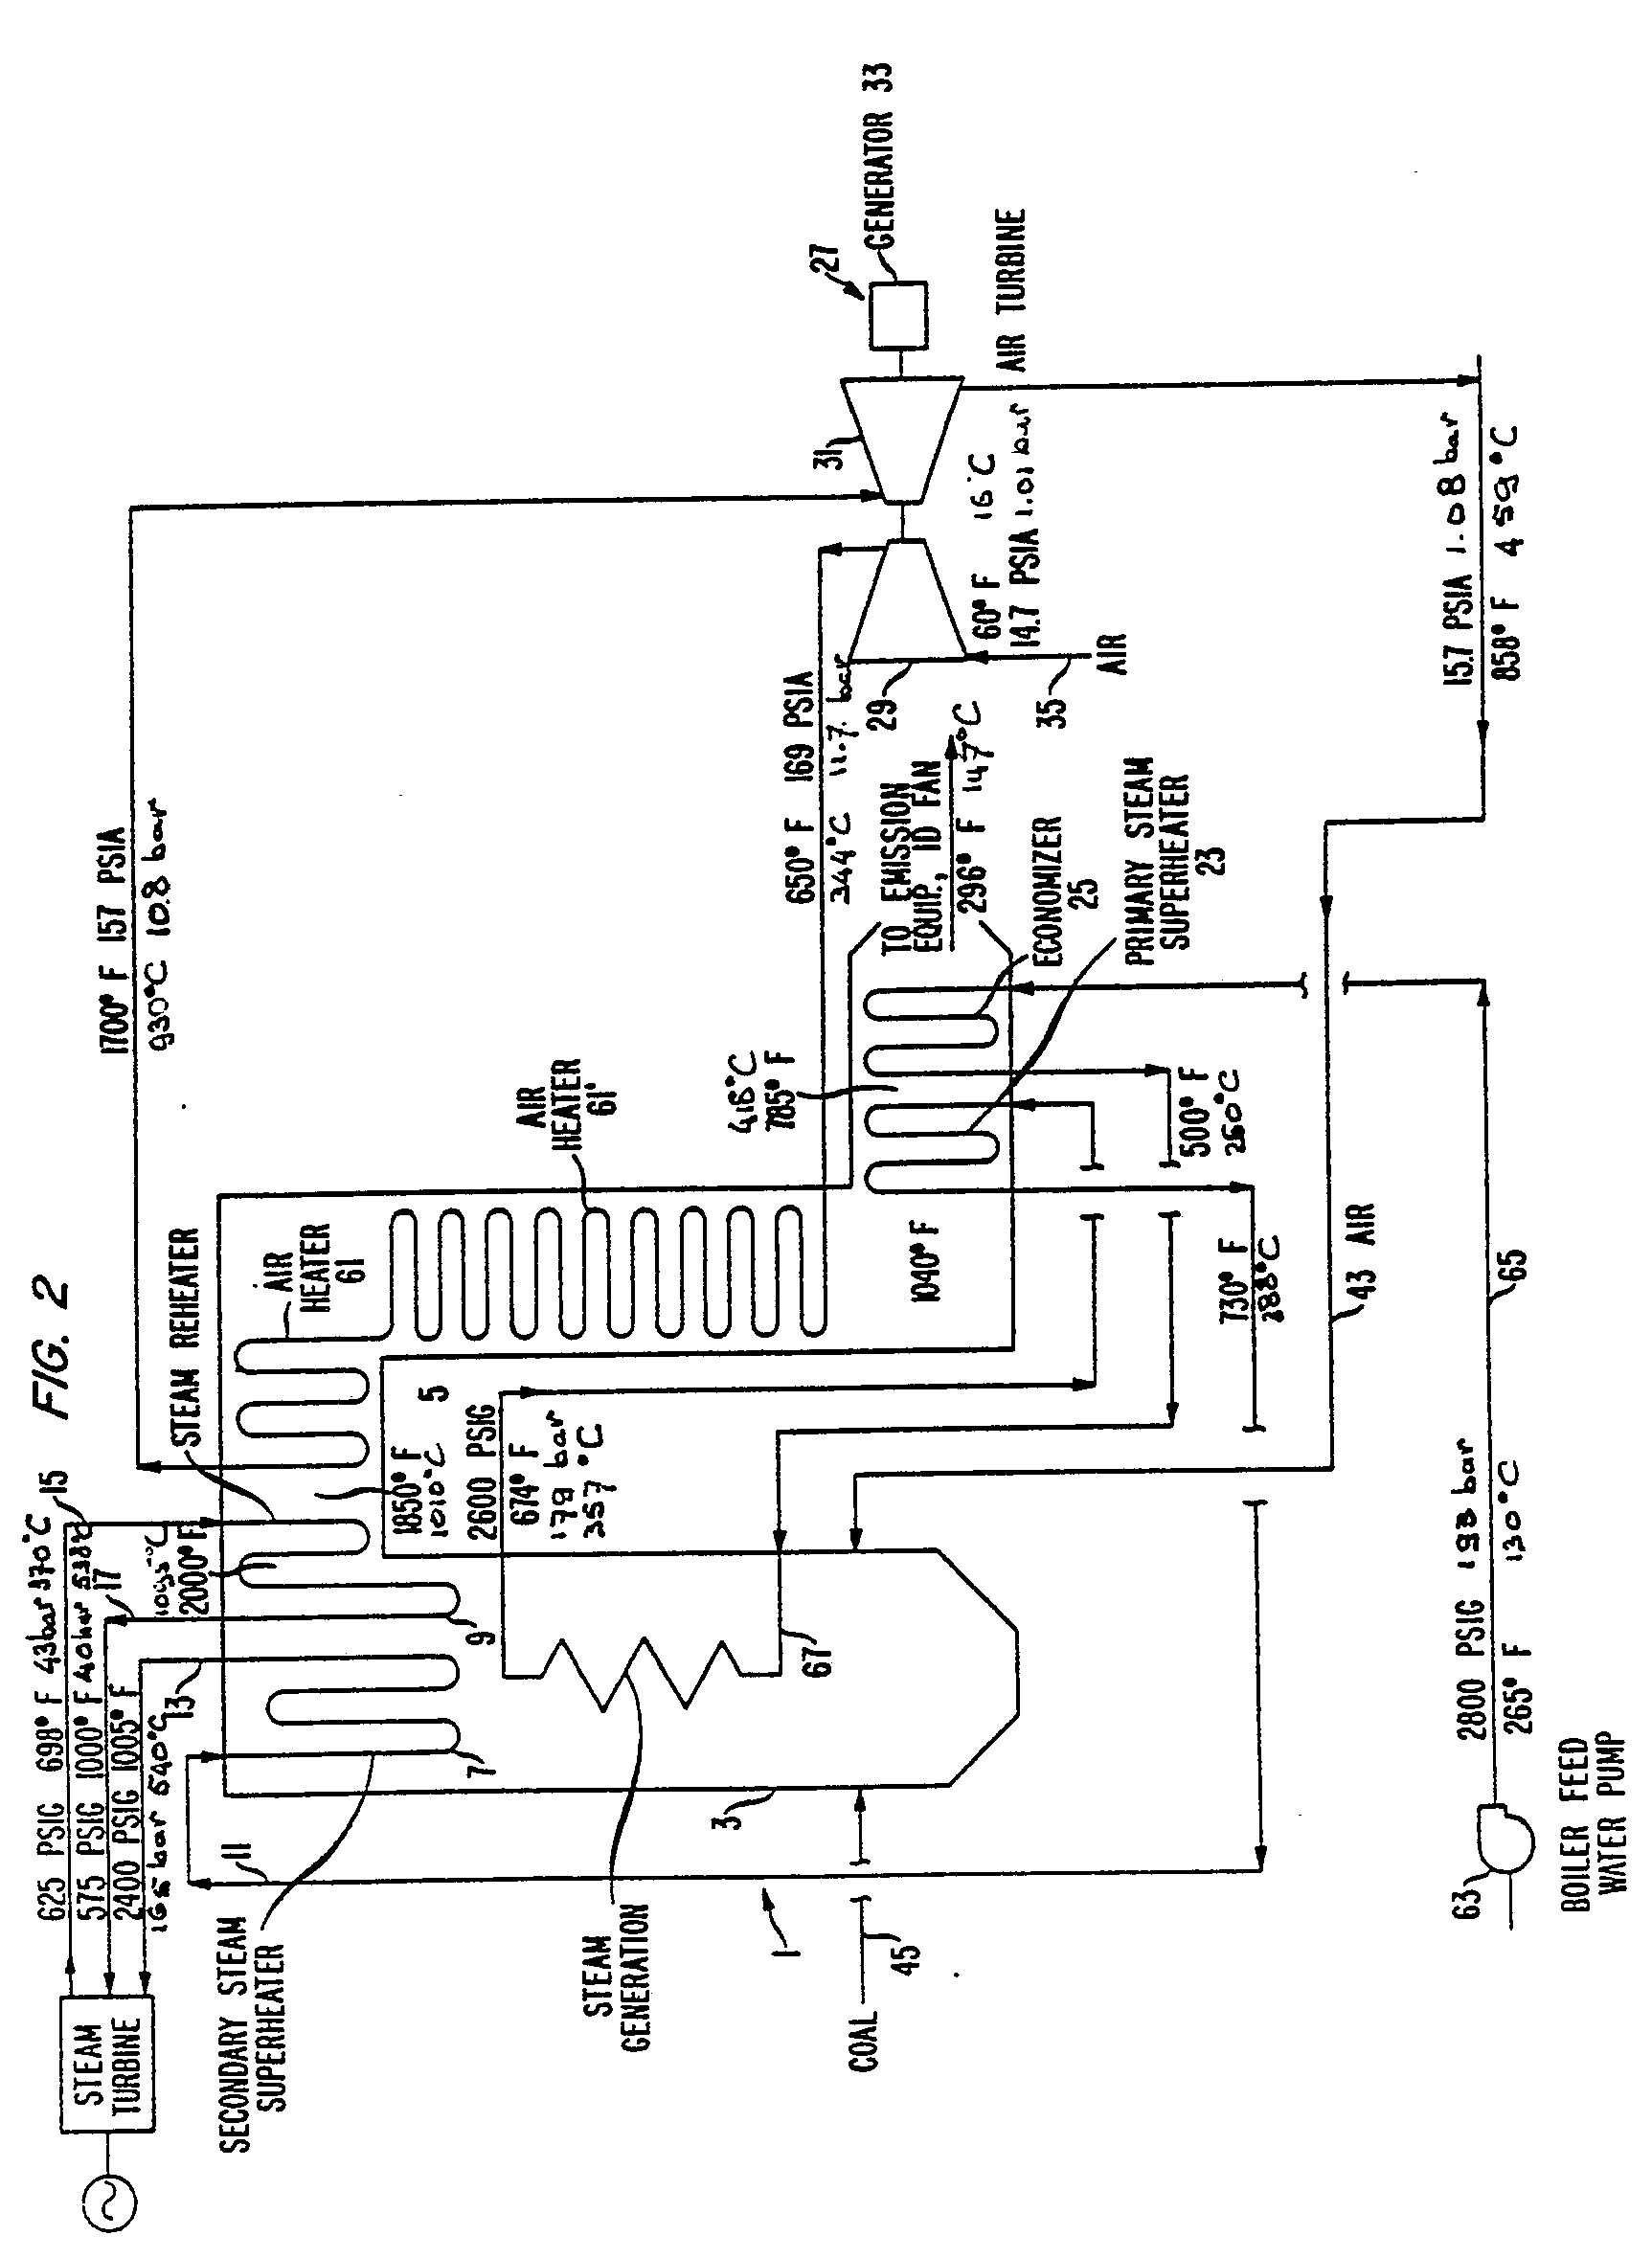 1998 Oldsmobile Aurora Wiring Diagram